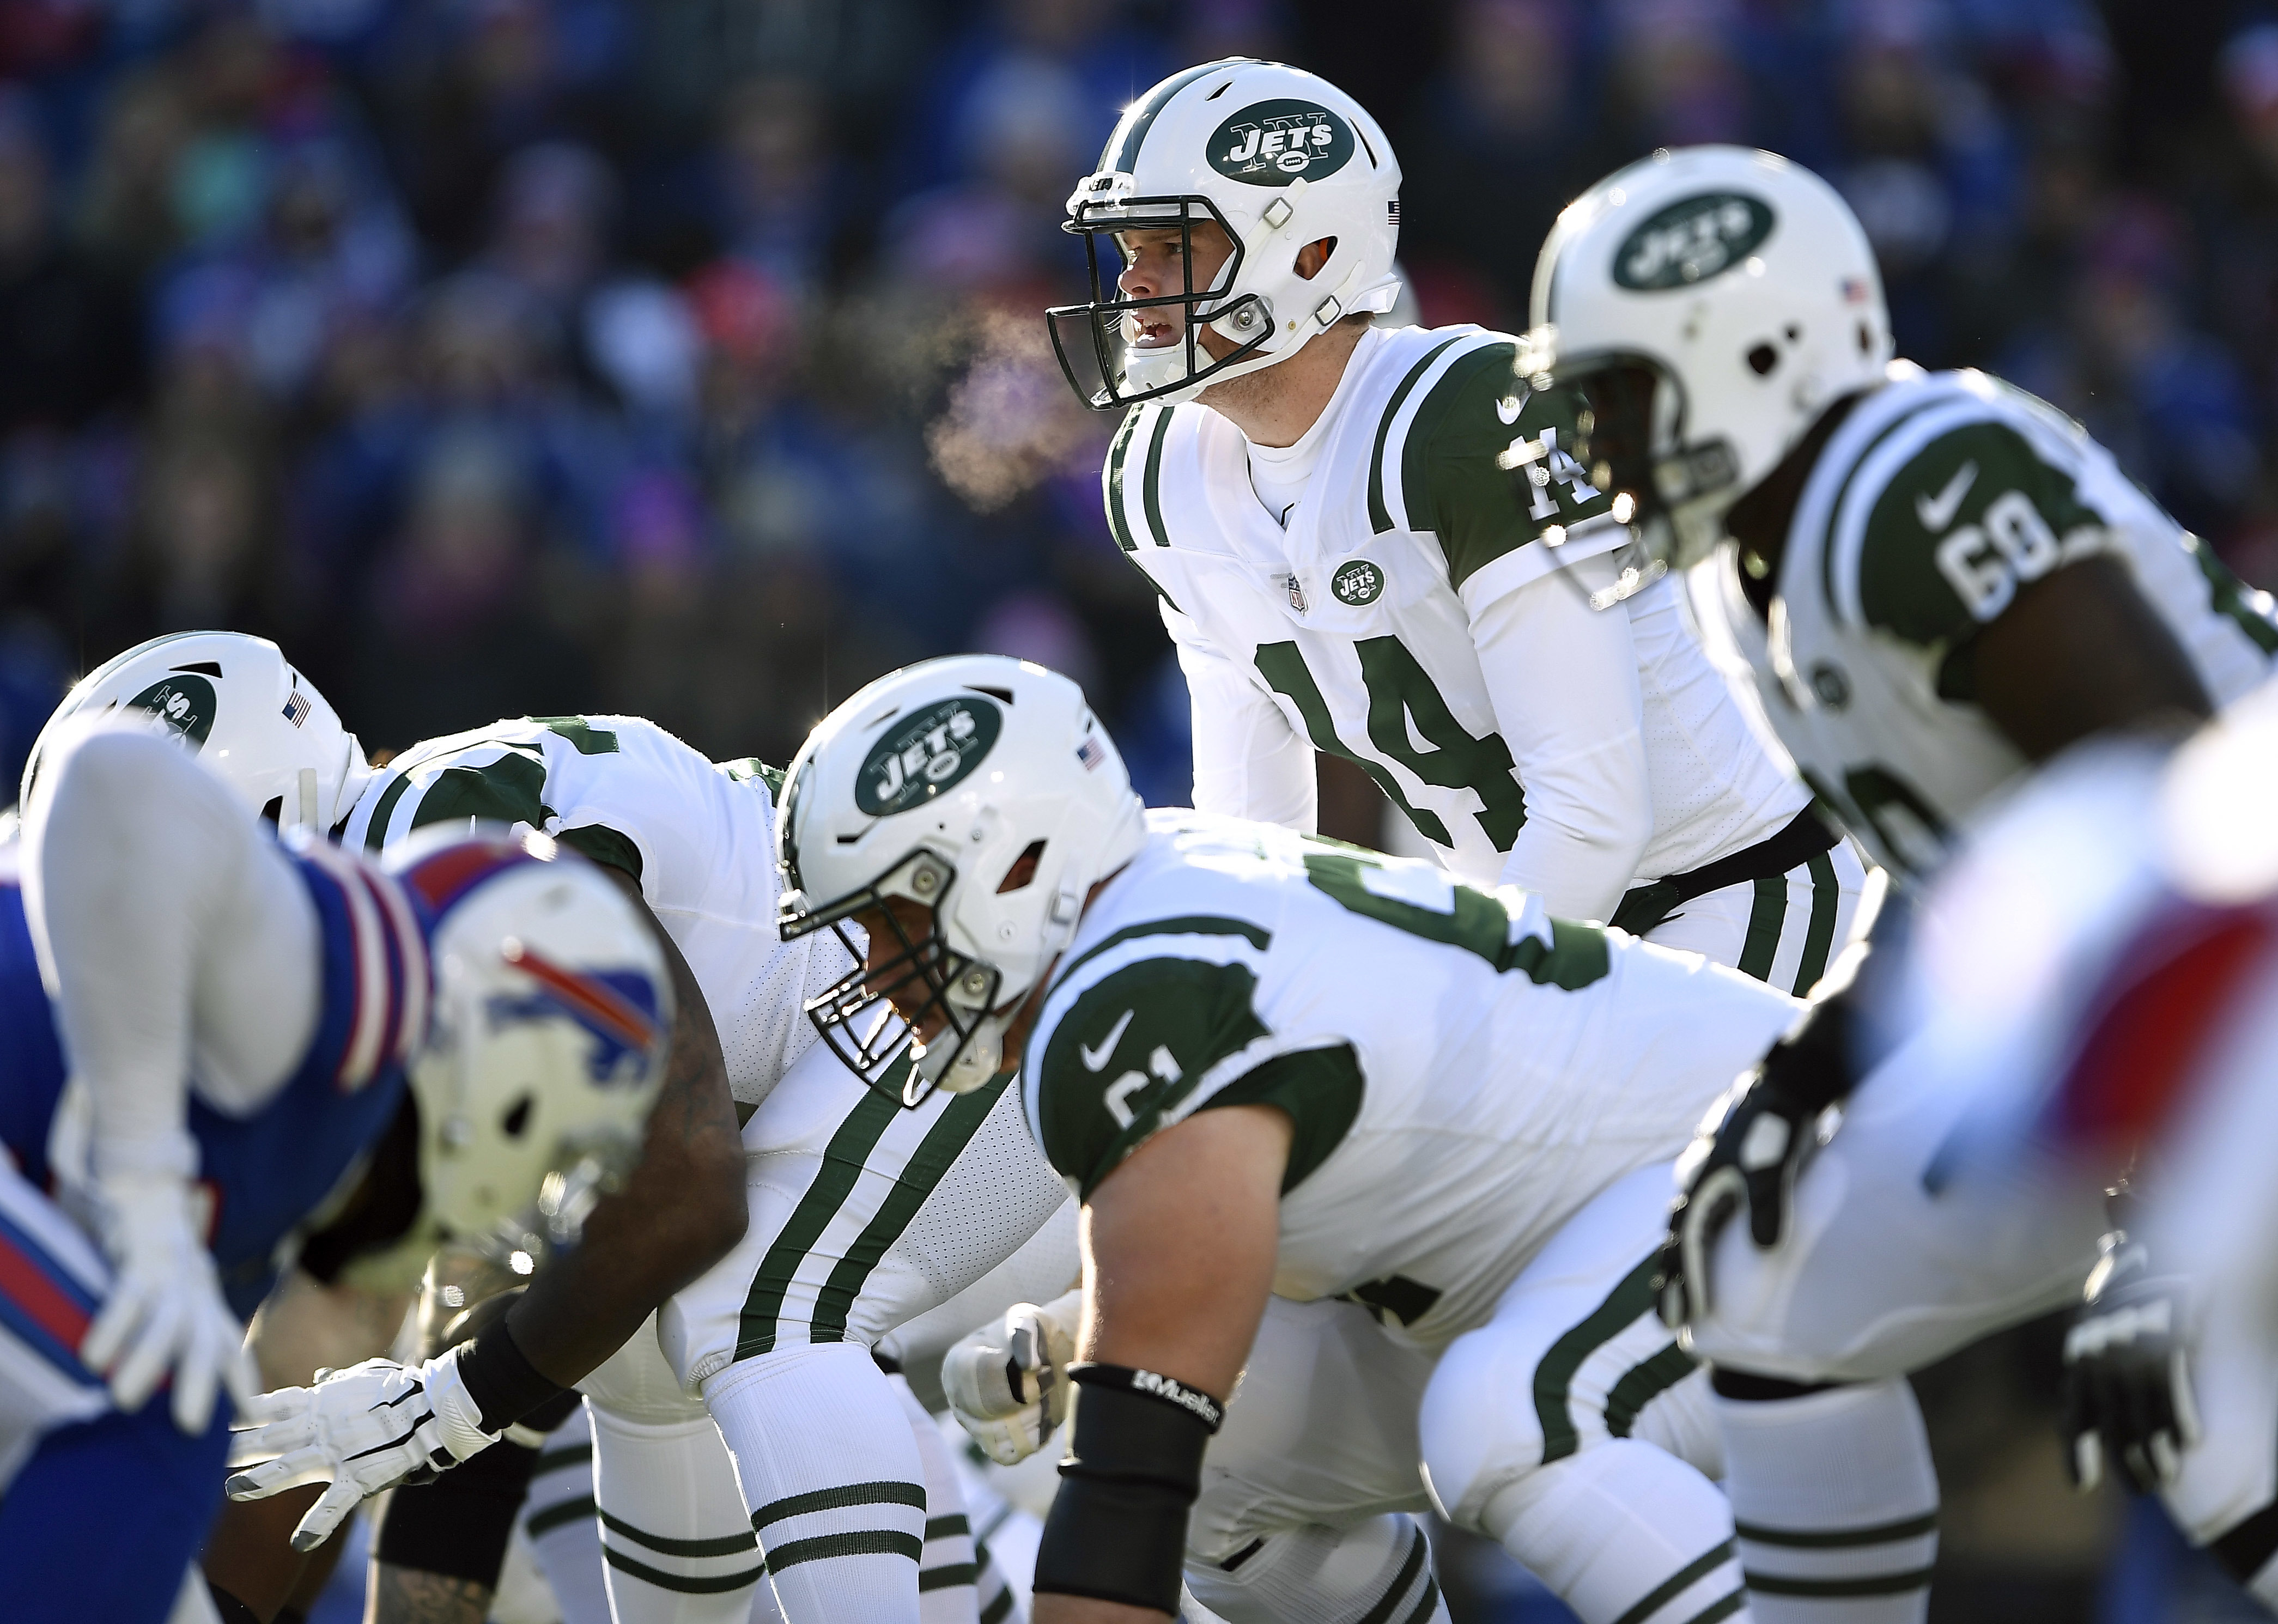 Buffalo Bills Vs New York Jets 7 Things To Know About Buffalo S Week 1 Opponent Newyorkupstate Com